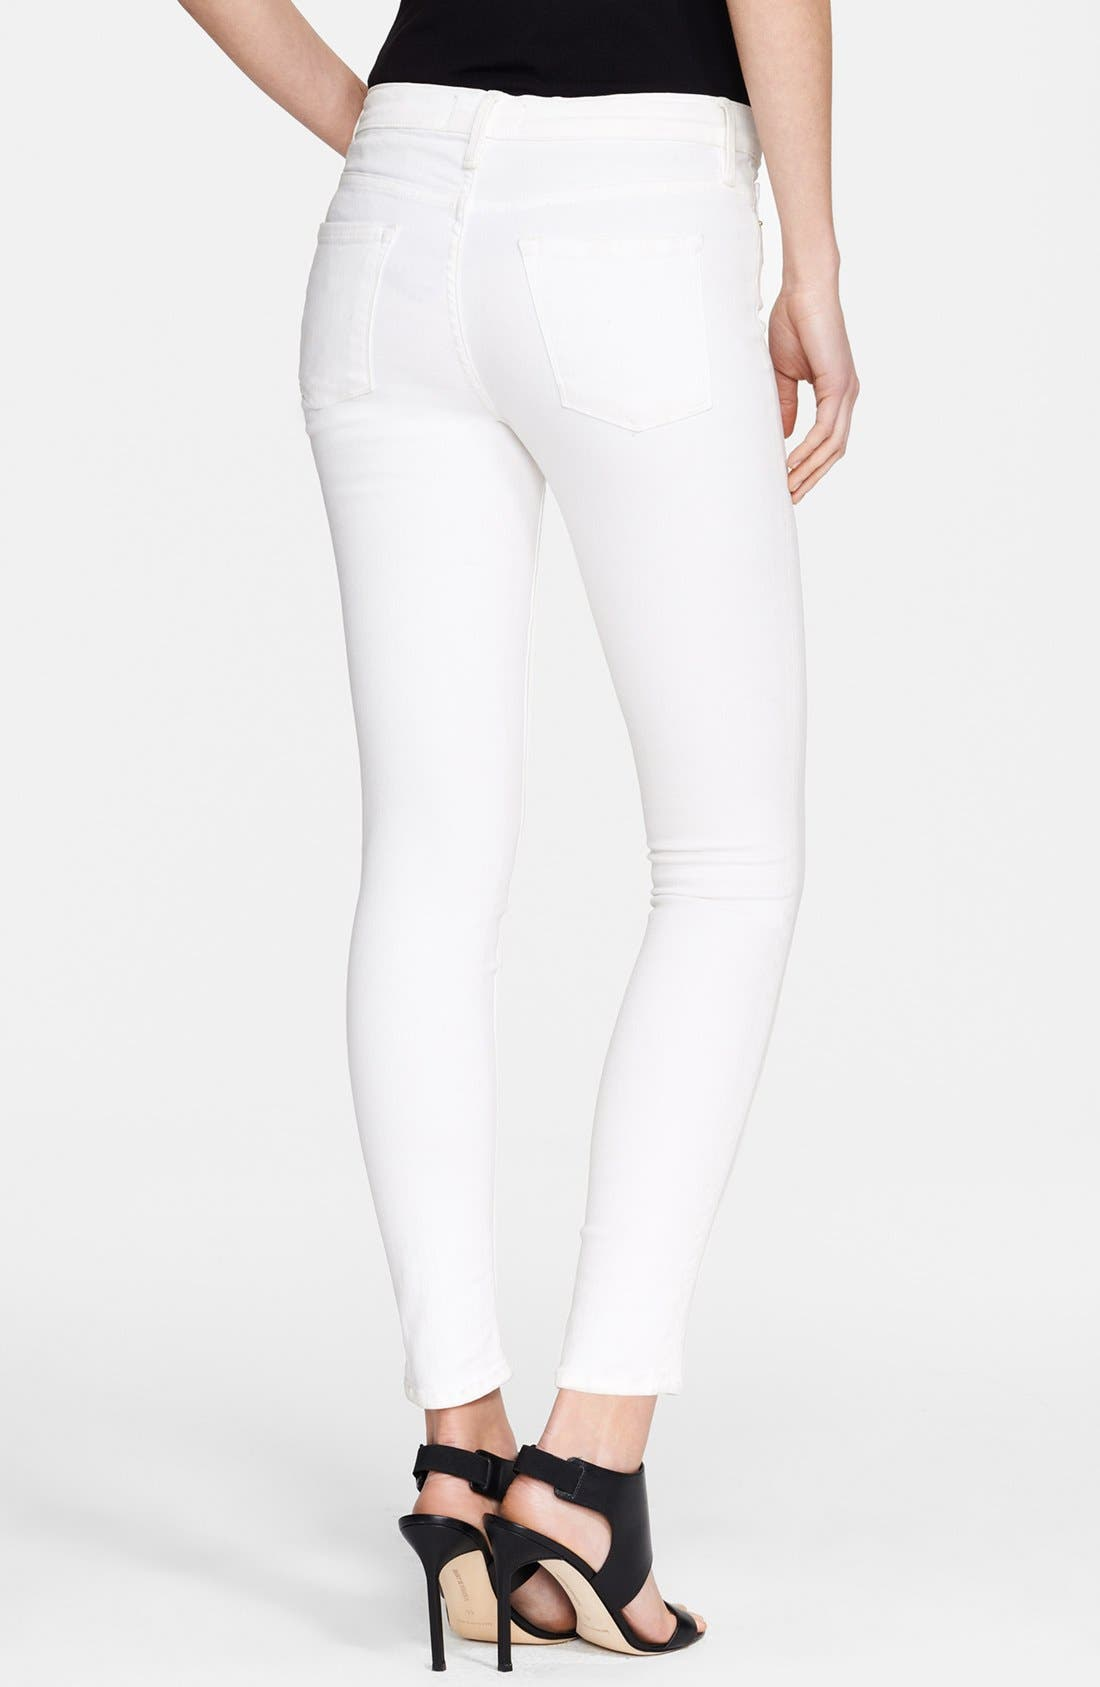 Le Color Skinny Jeans,                             Alternate thumbnail 9, color,                             BLANC